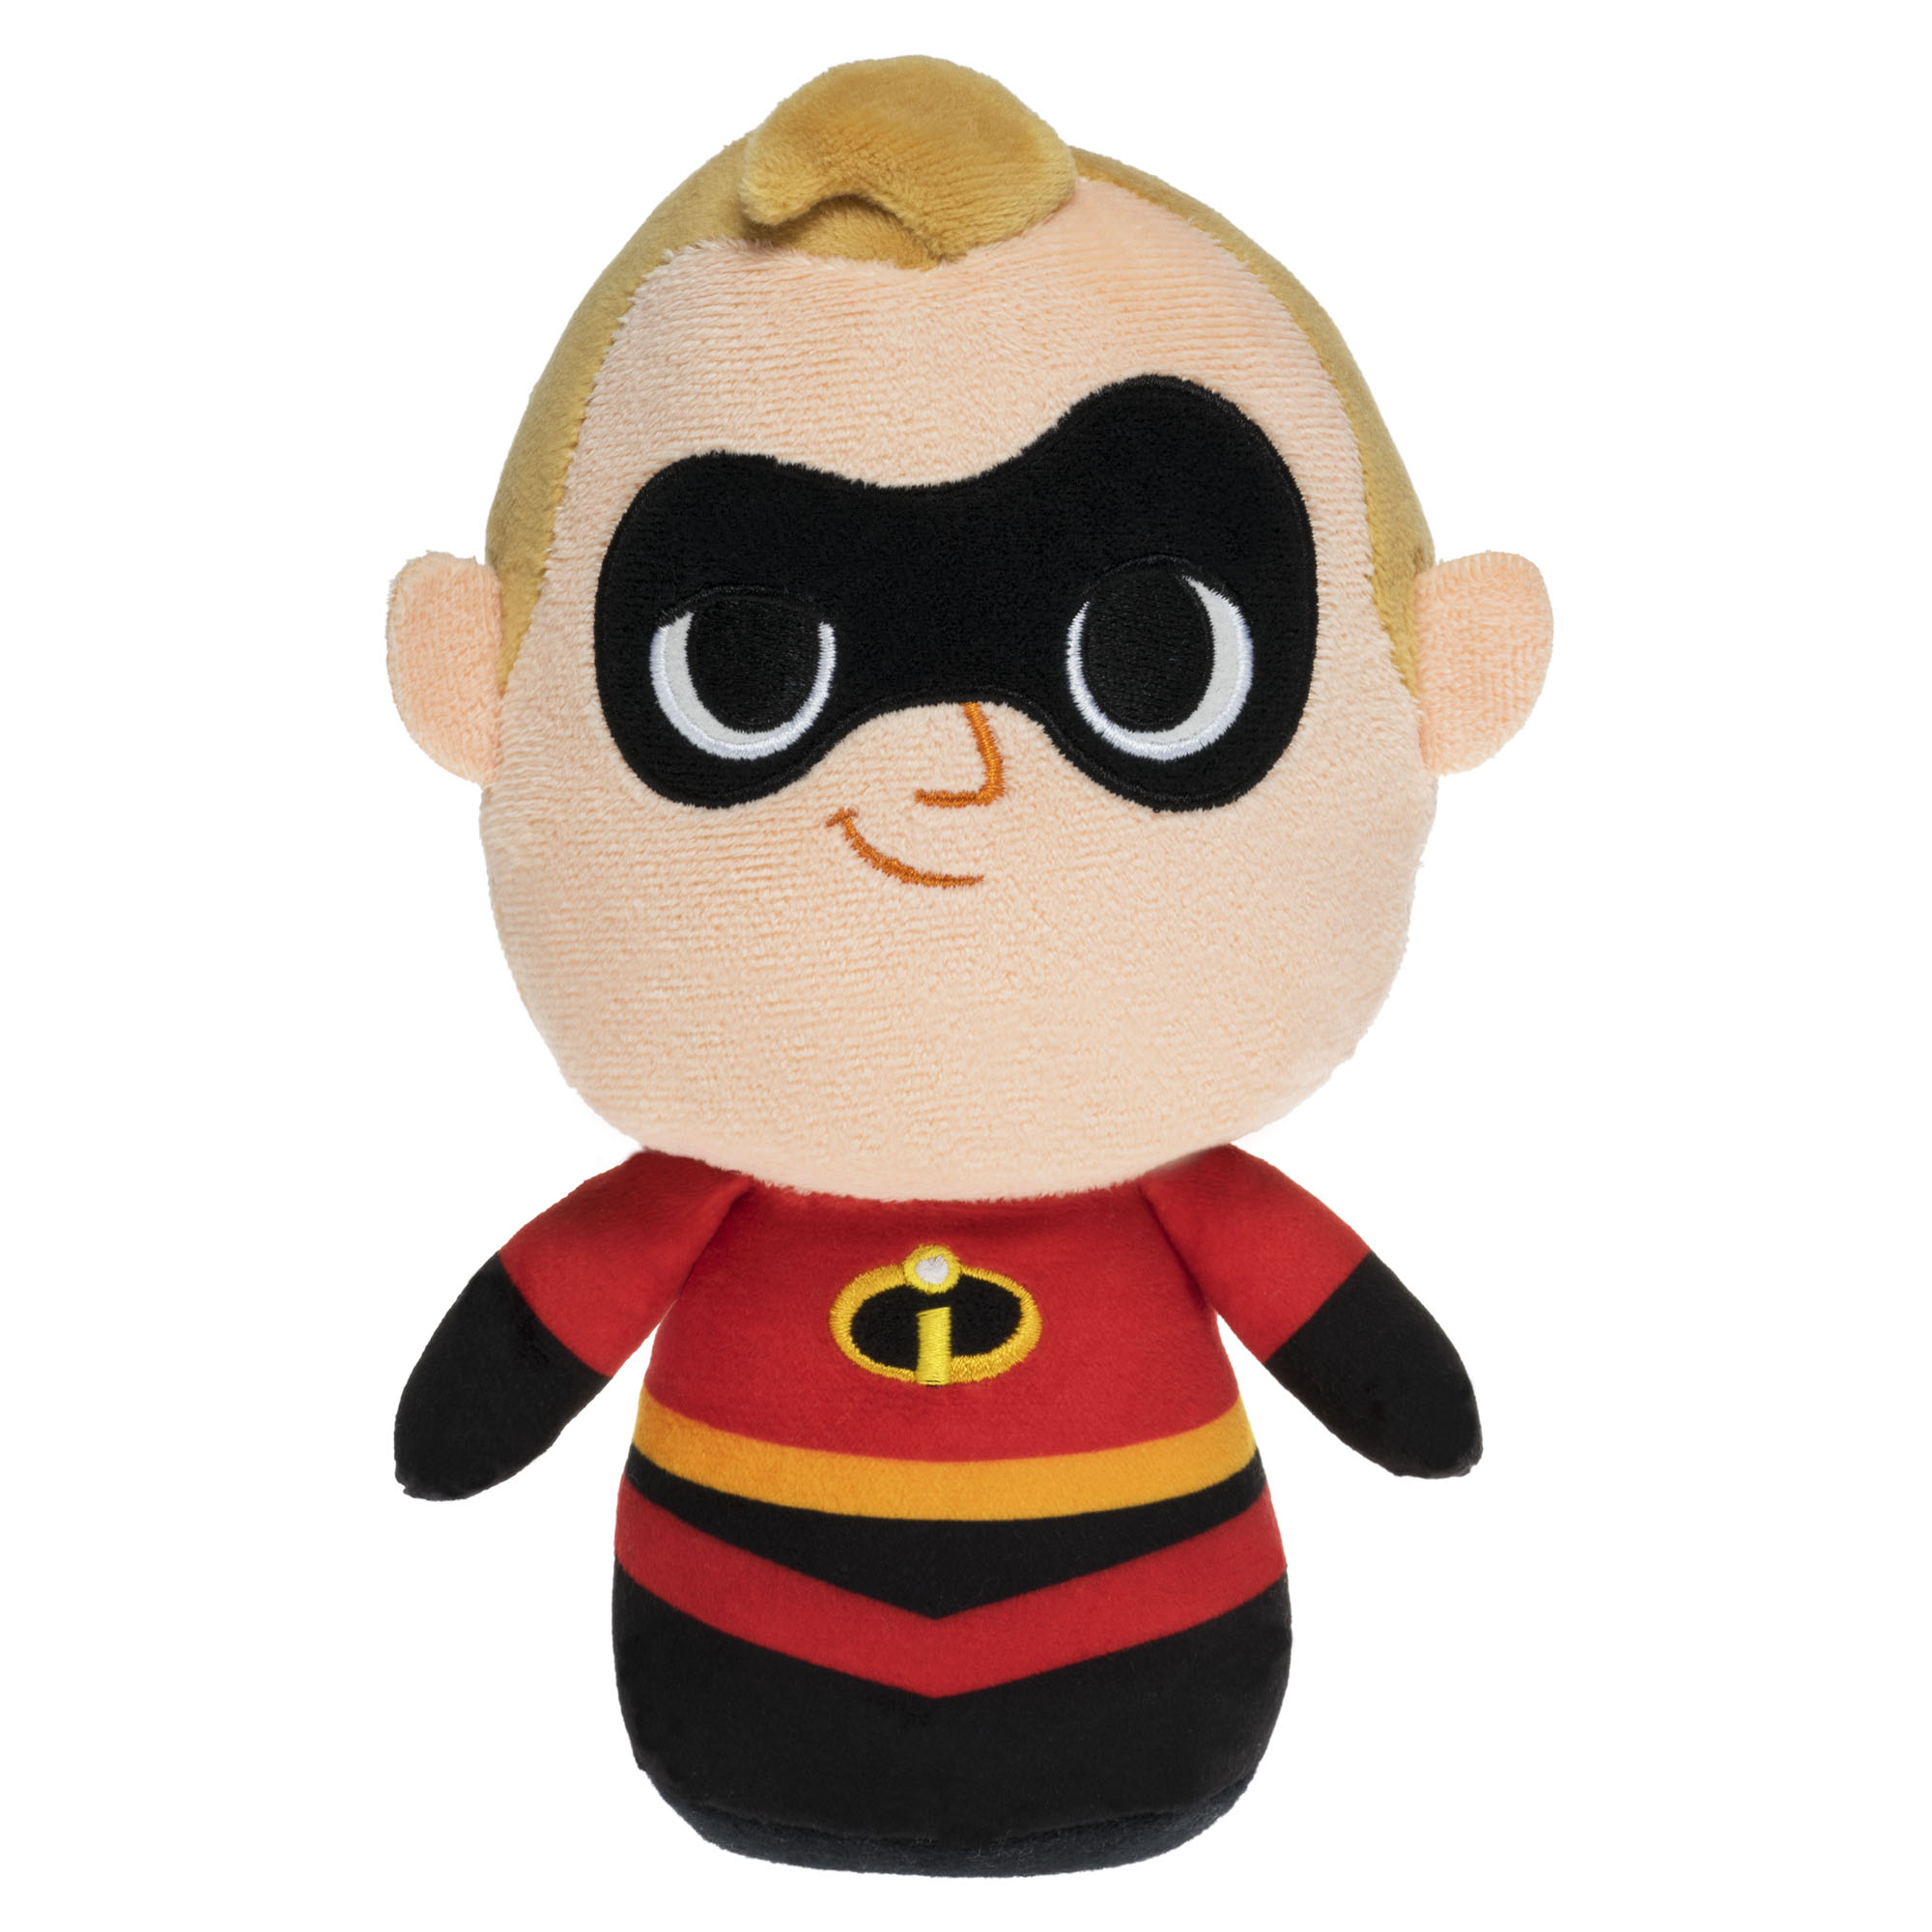 Funko Plush: Incredibles 2 - Mr. Incredible